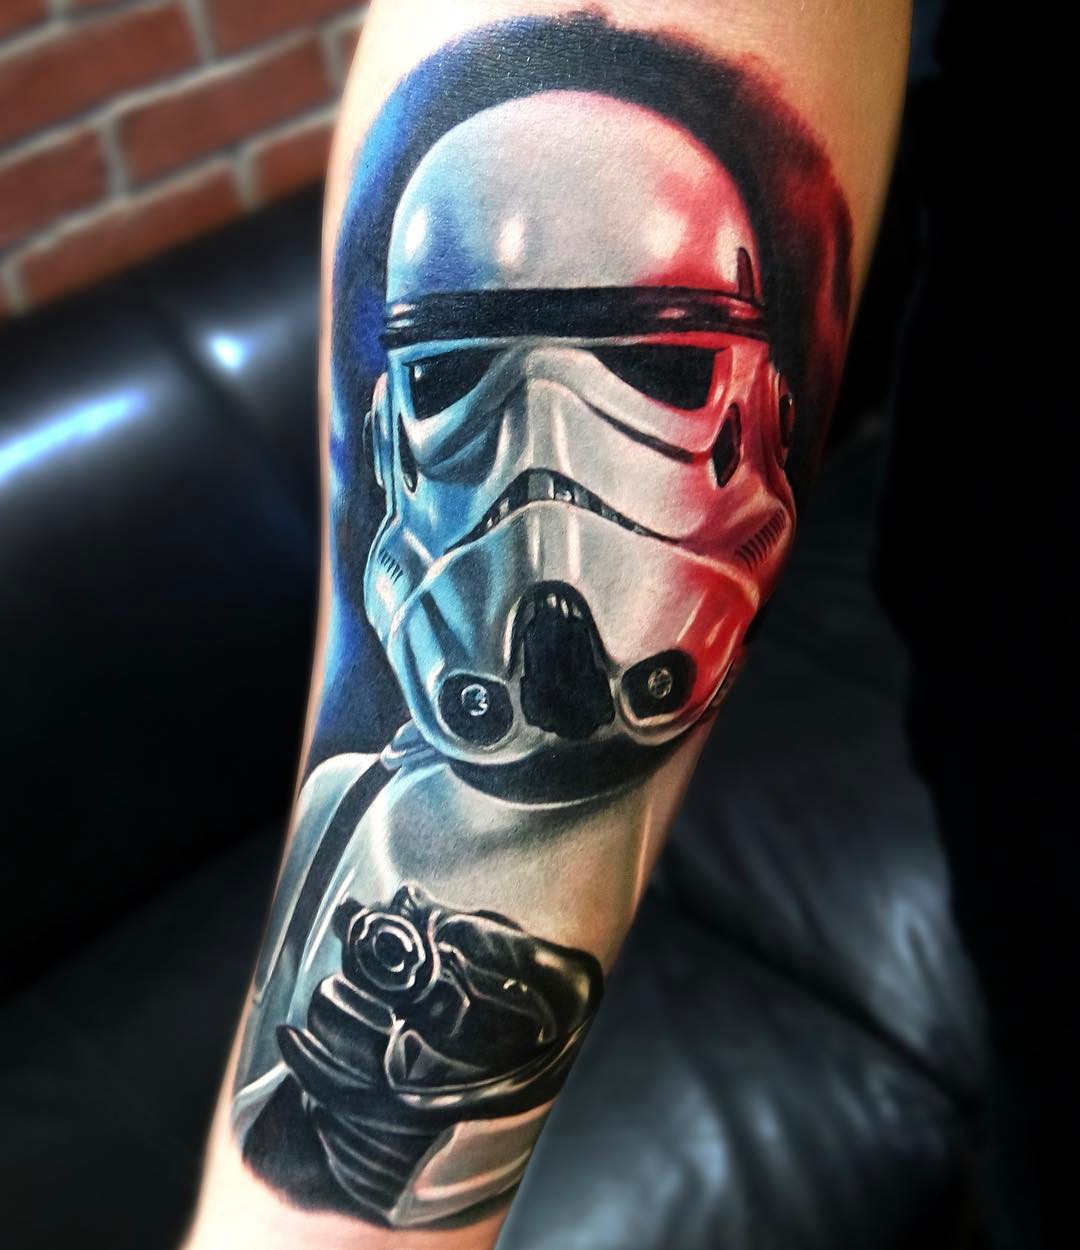 Remarkable, rather star wars stormtrooper tattoo